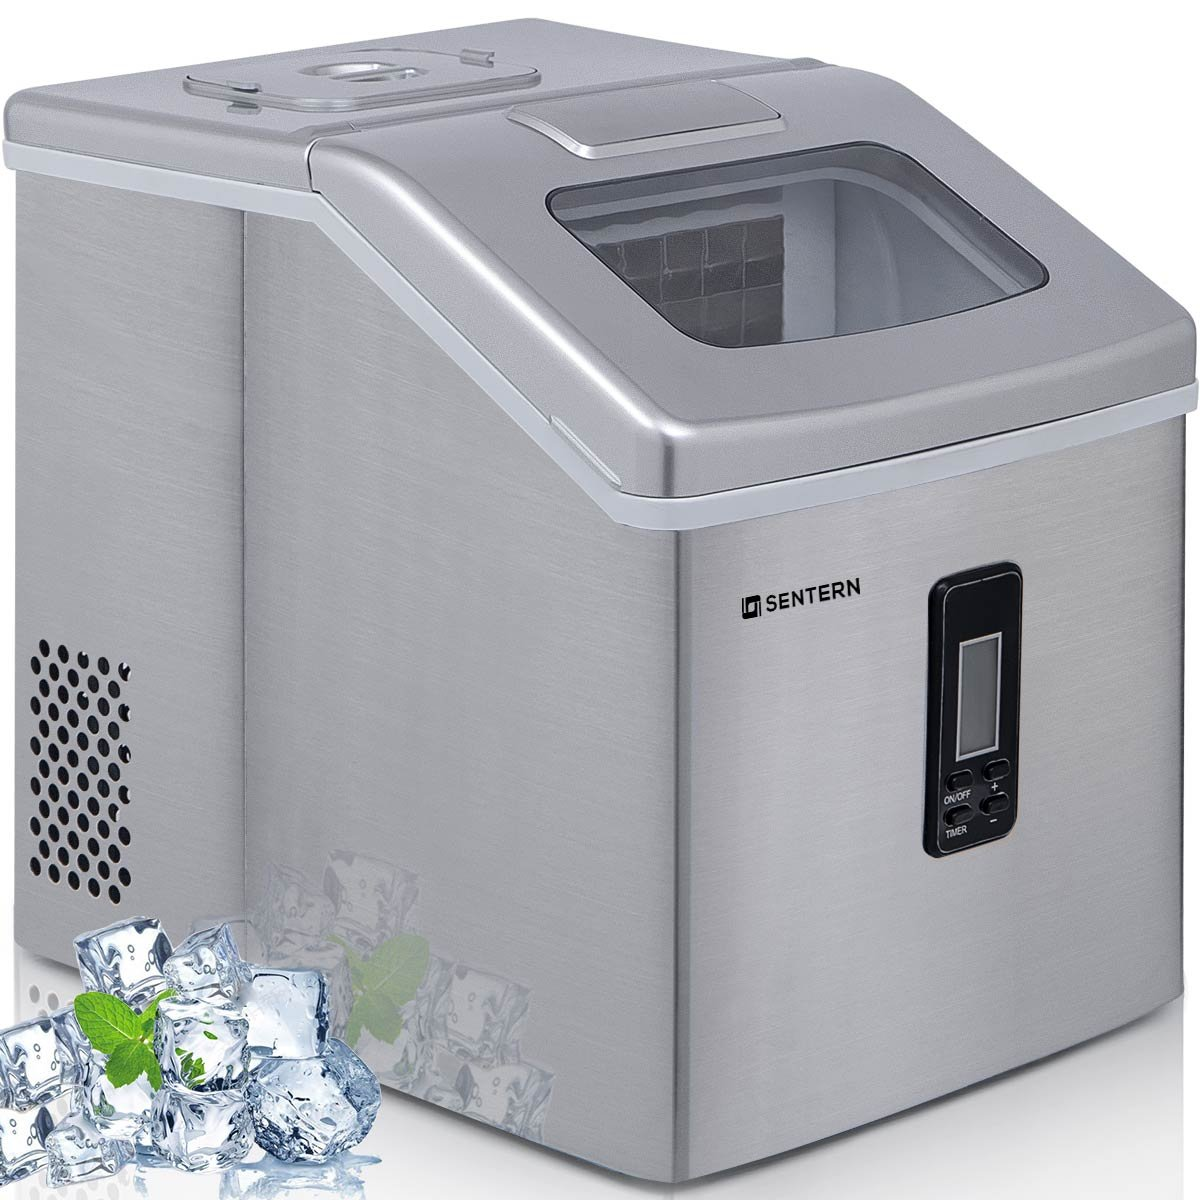 Portable Countertop Clear Ice Maker Electric Maker Machine 48 lbs Per Day, Make Real Clear Ice Cubes